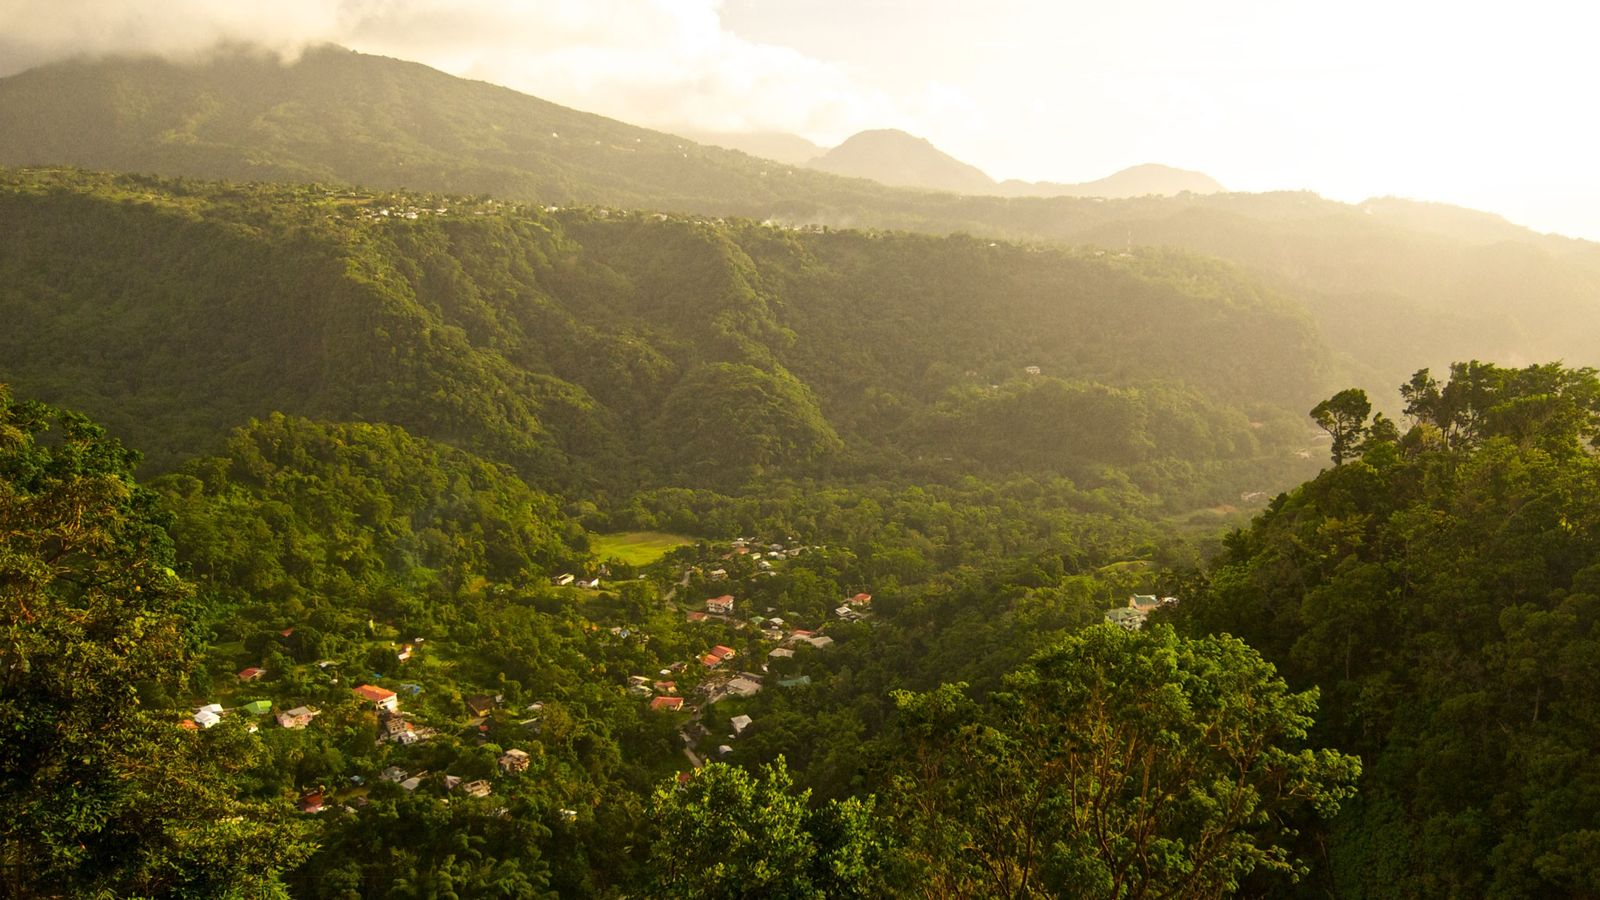 In an address to the U.N. last year, Dominica's prime minister said the country planned to ...